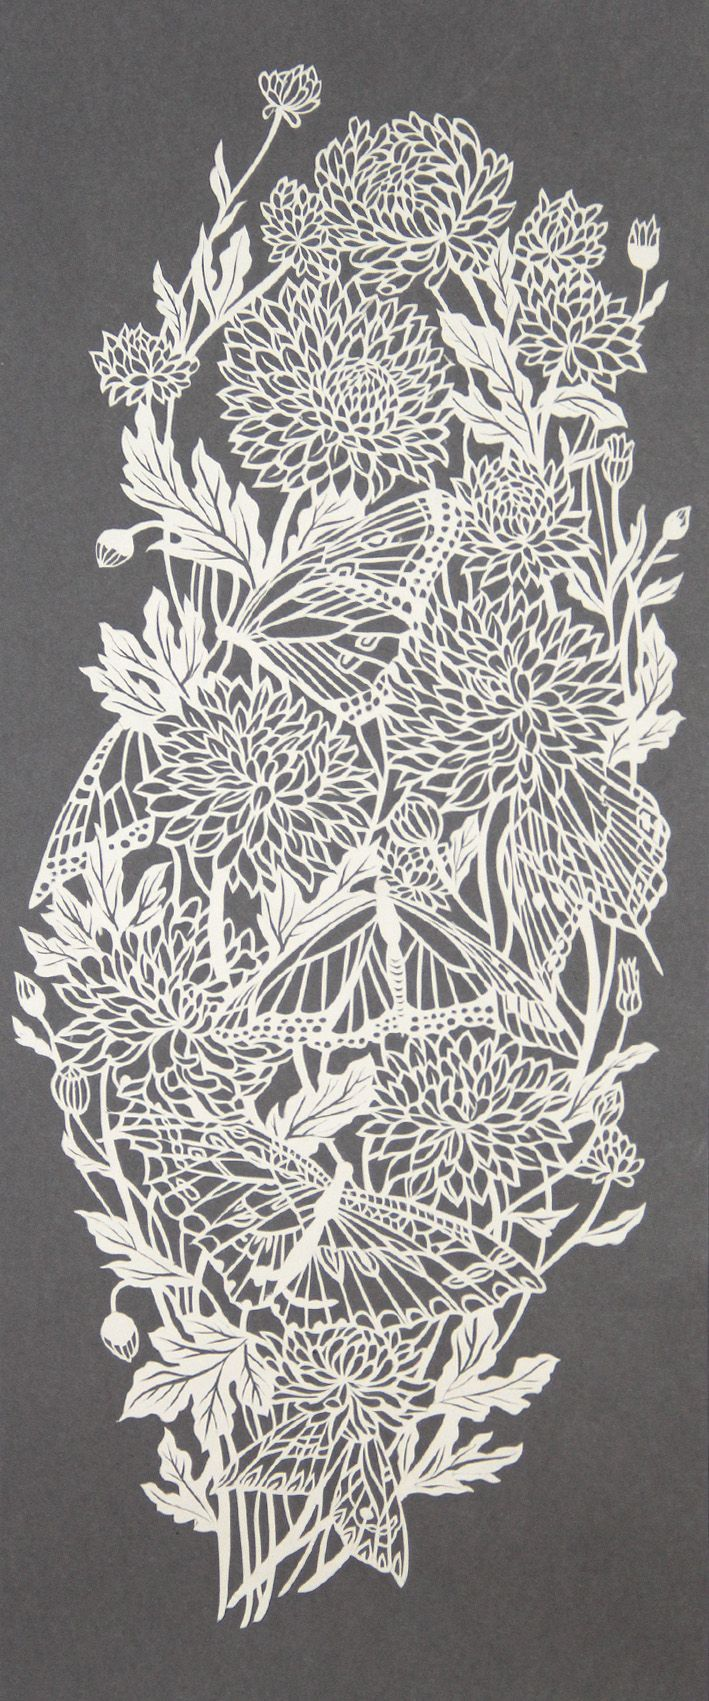 #chrysanthemums papercut                                                                                                                                                      More